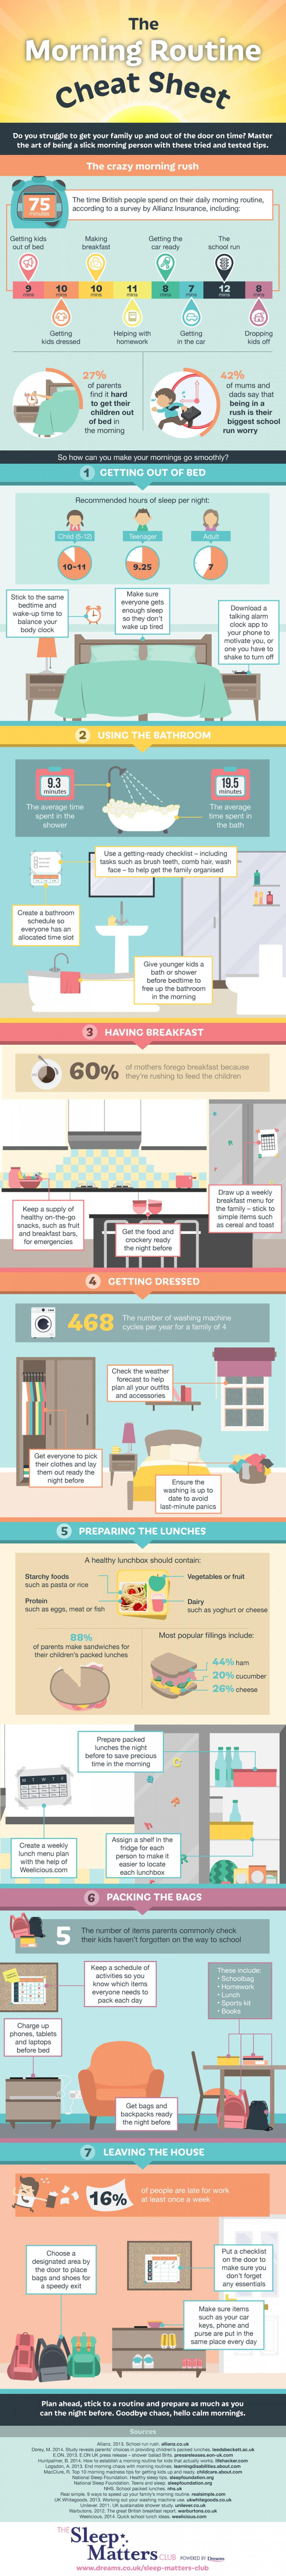 ResumeDesignCo.com The Morning Routine Cheat Sheet  Infographic